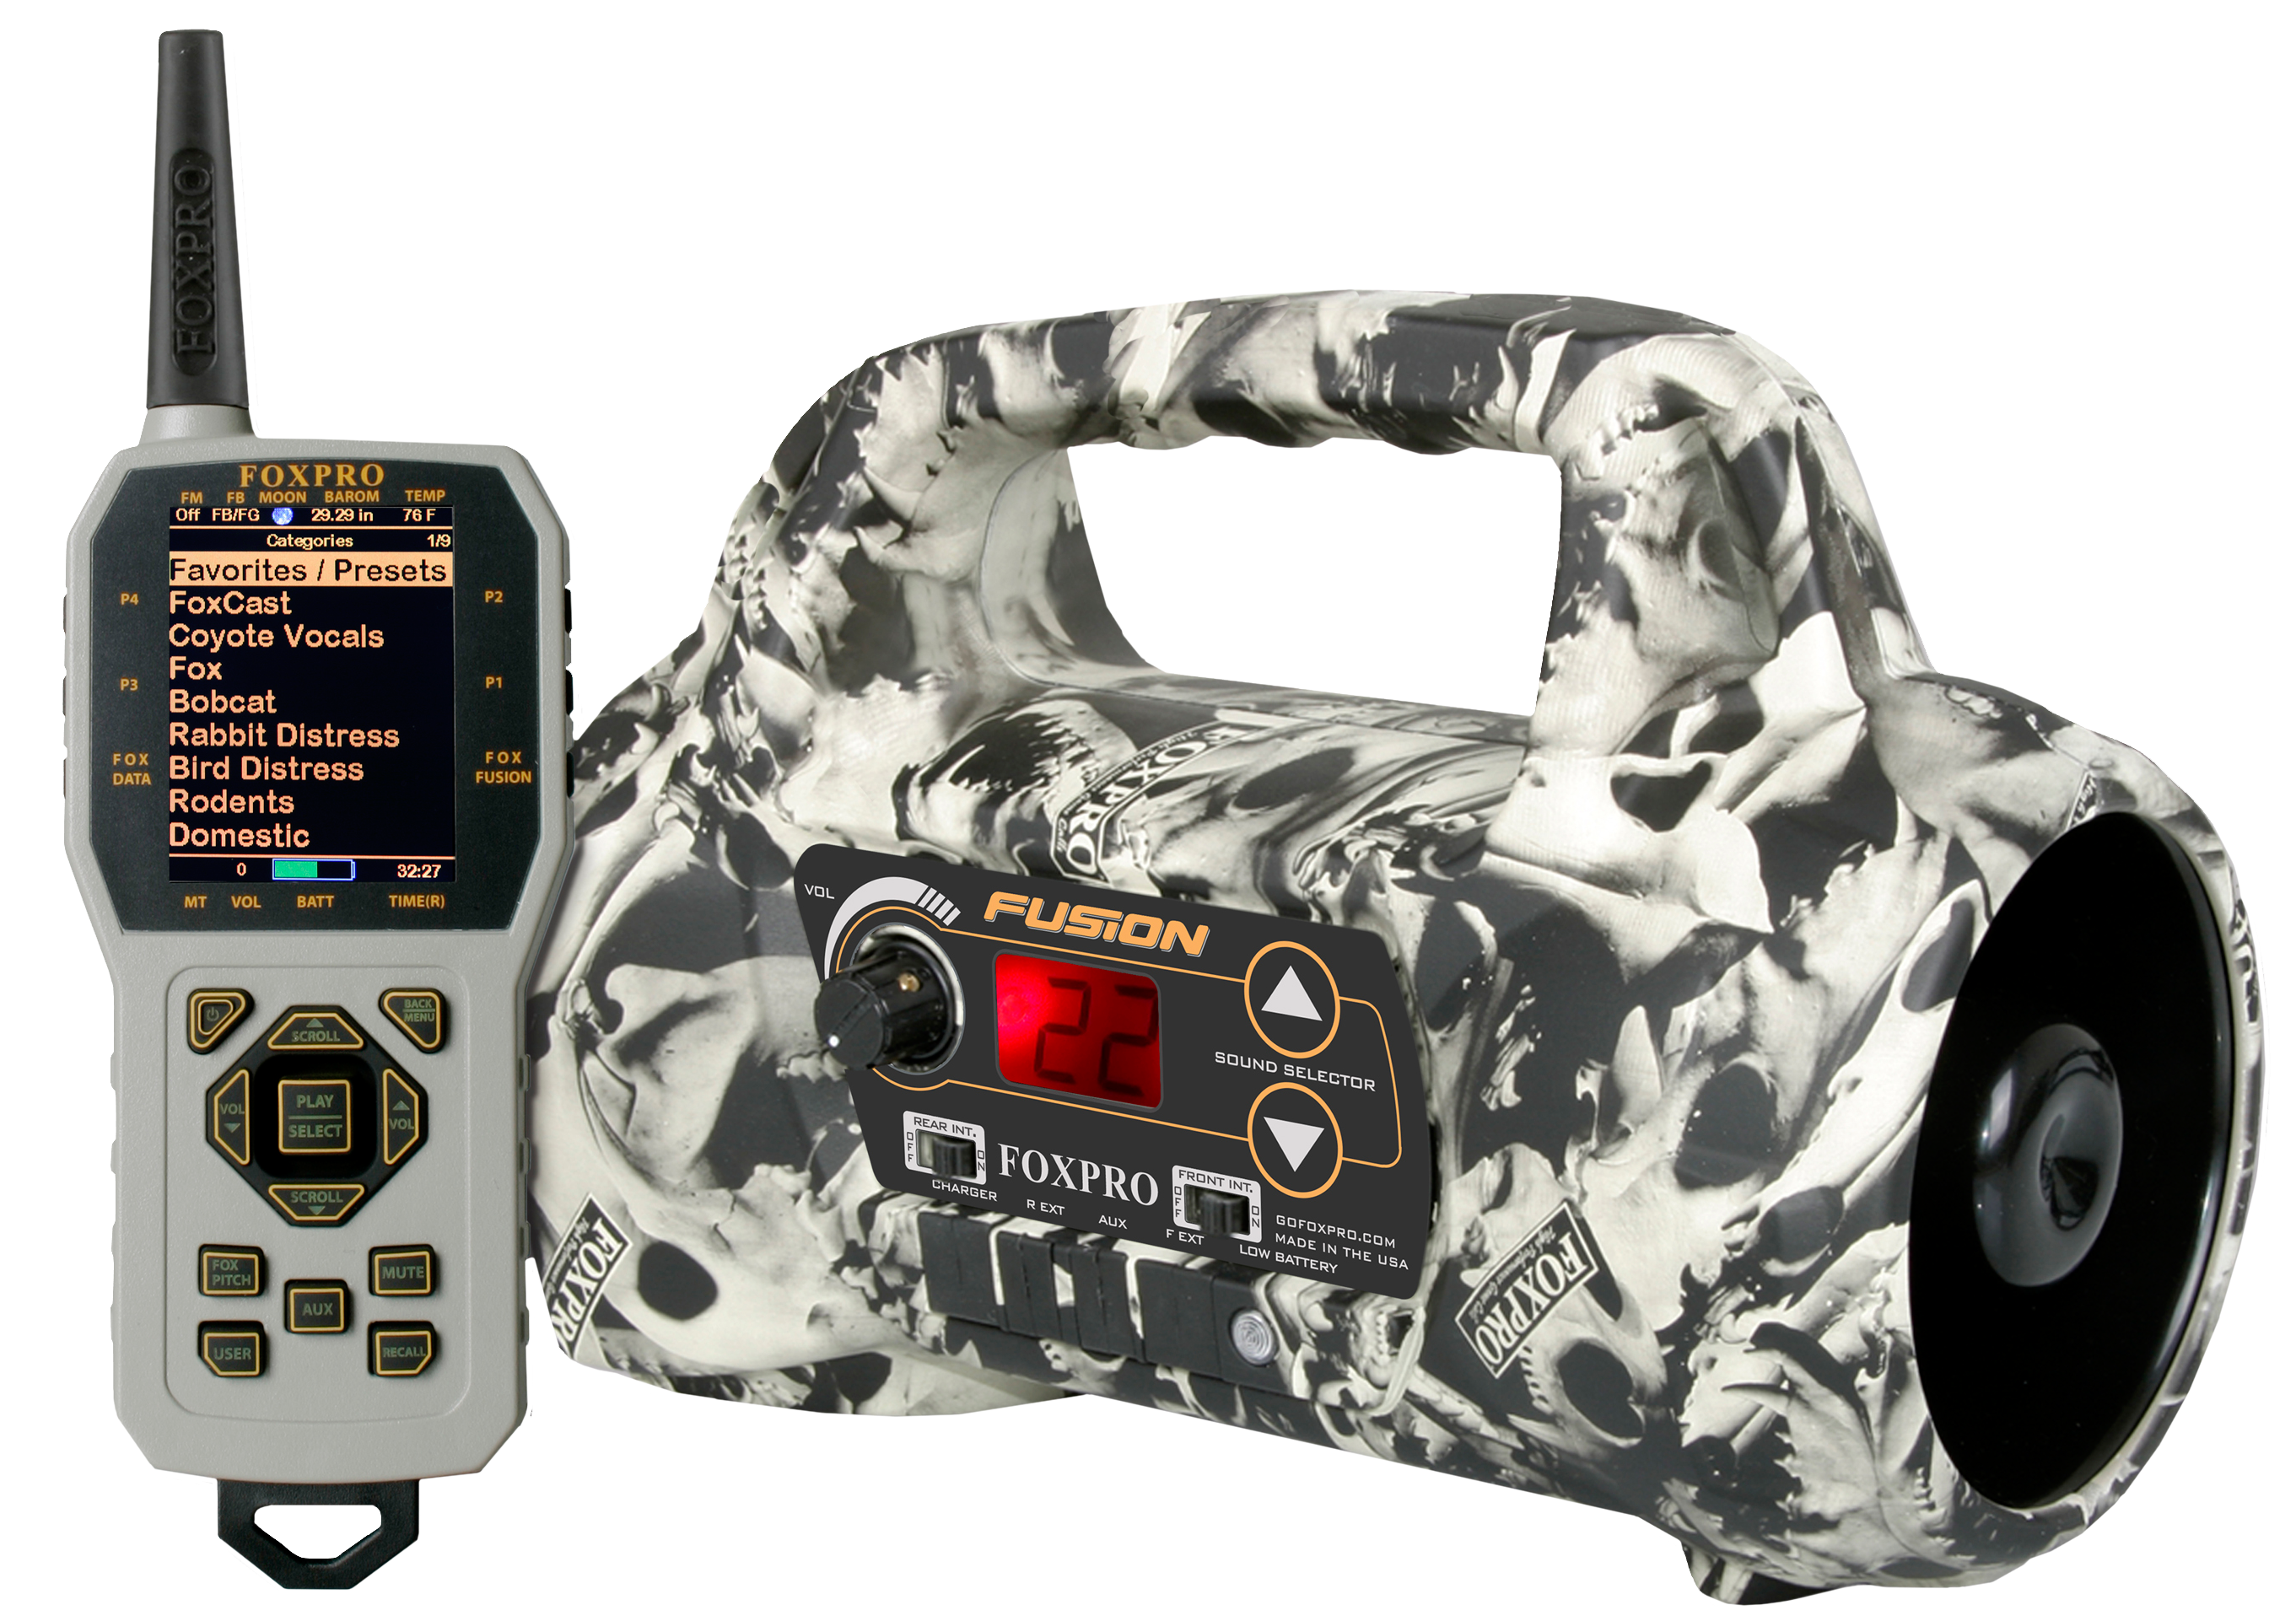 Foxpro Fusion Portable Electric Caller Programmable up to 1000 Calls Skull Camo